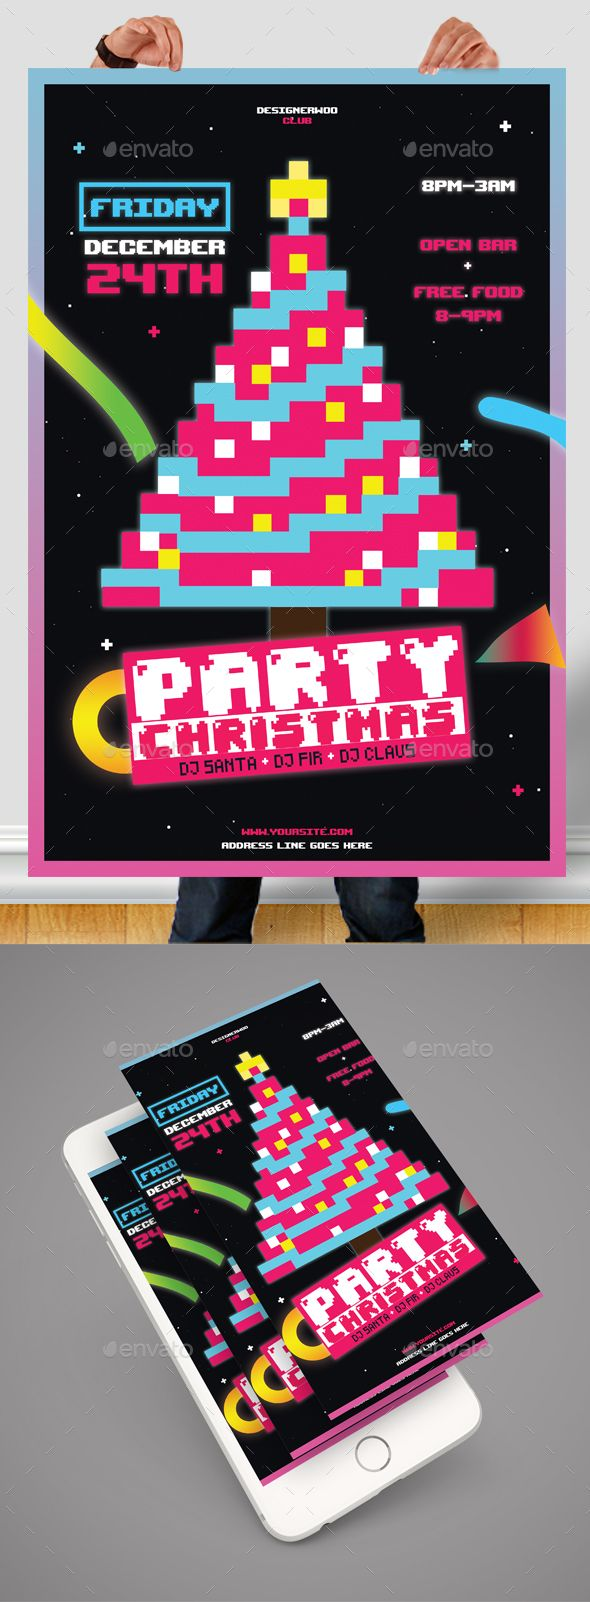 Christmas Poster — Photoshop PSD #fresh #event • Download ➝ https://graphicriver.net/item/christmas-poster/18865040?ref=pxcr